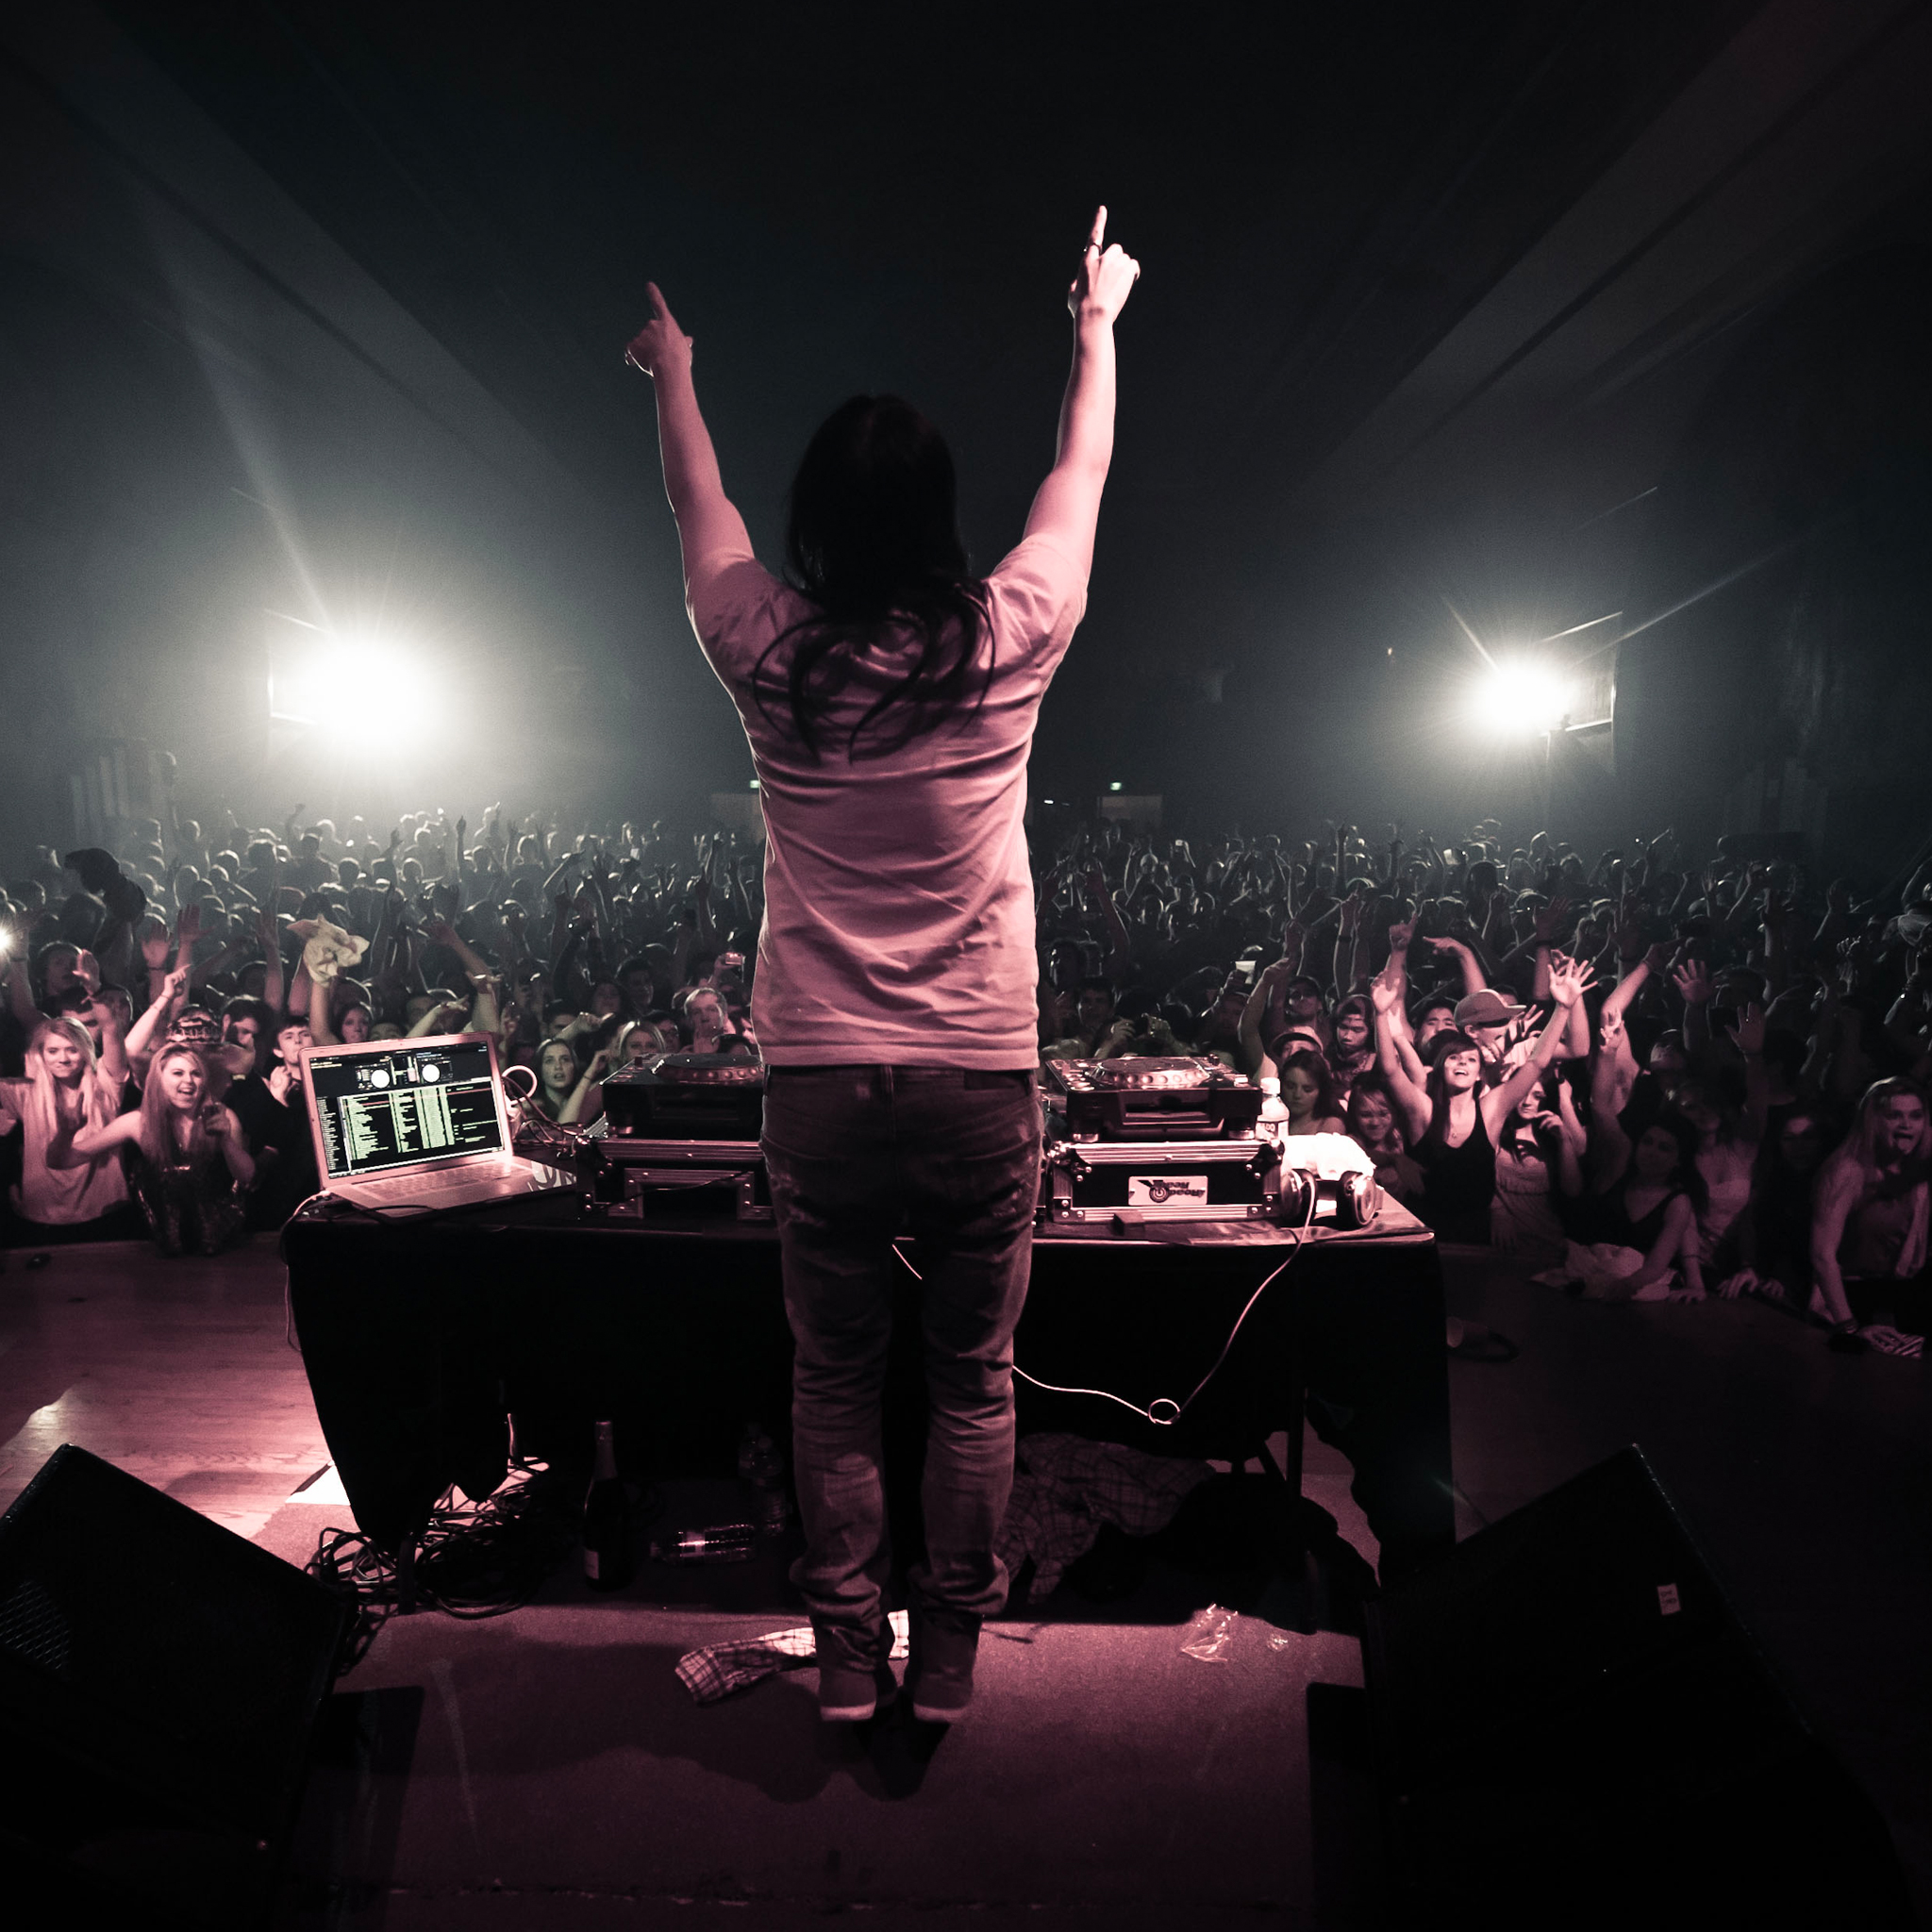 Steve Aoki 3 Wallpapers iPad Steve Aoki   iPad